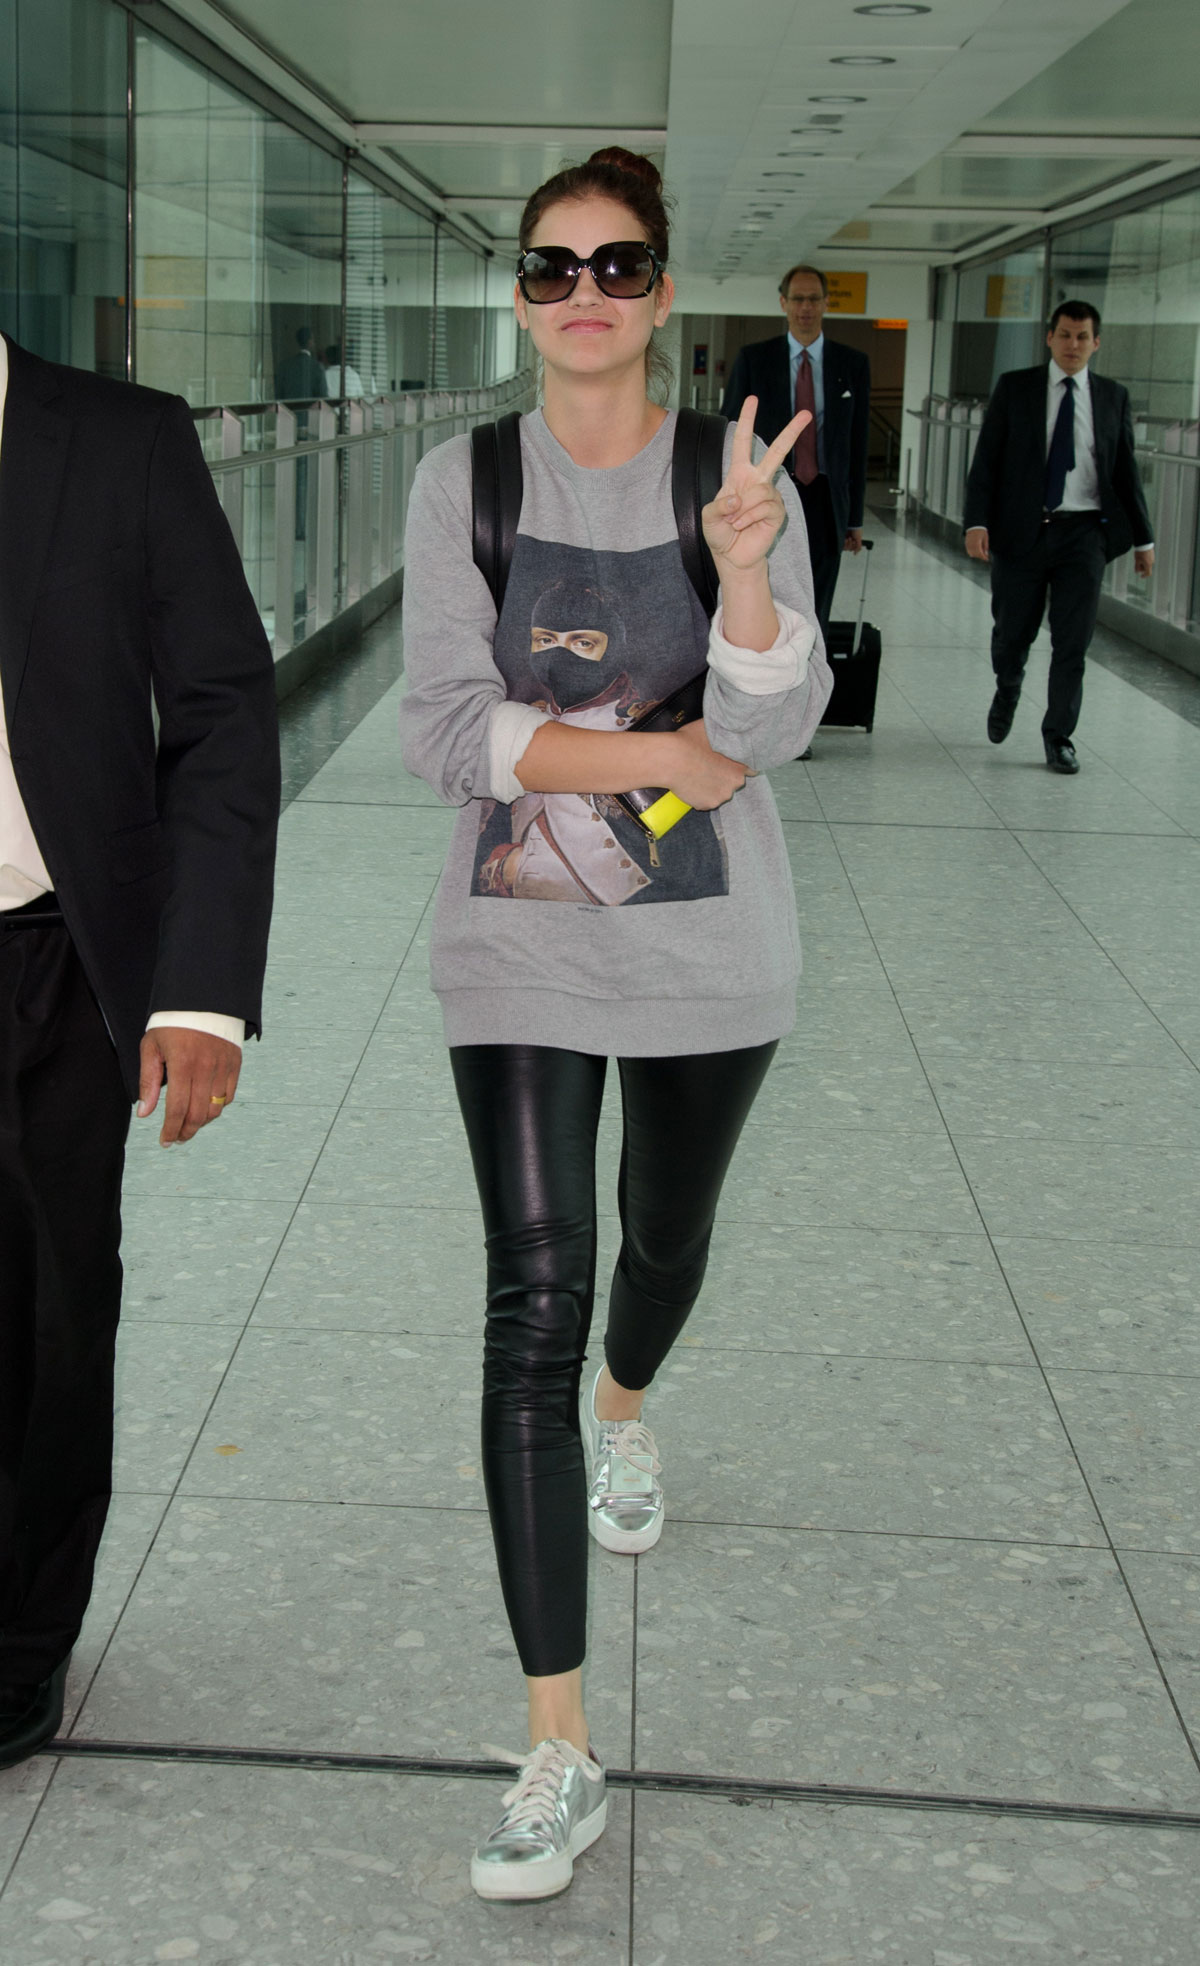 Barbara Palvin at Heathrow airport